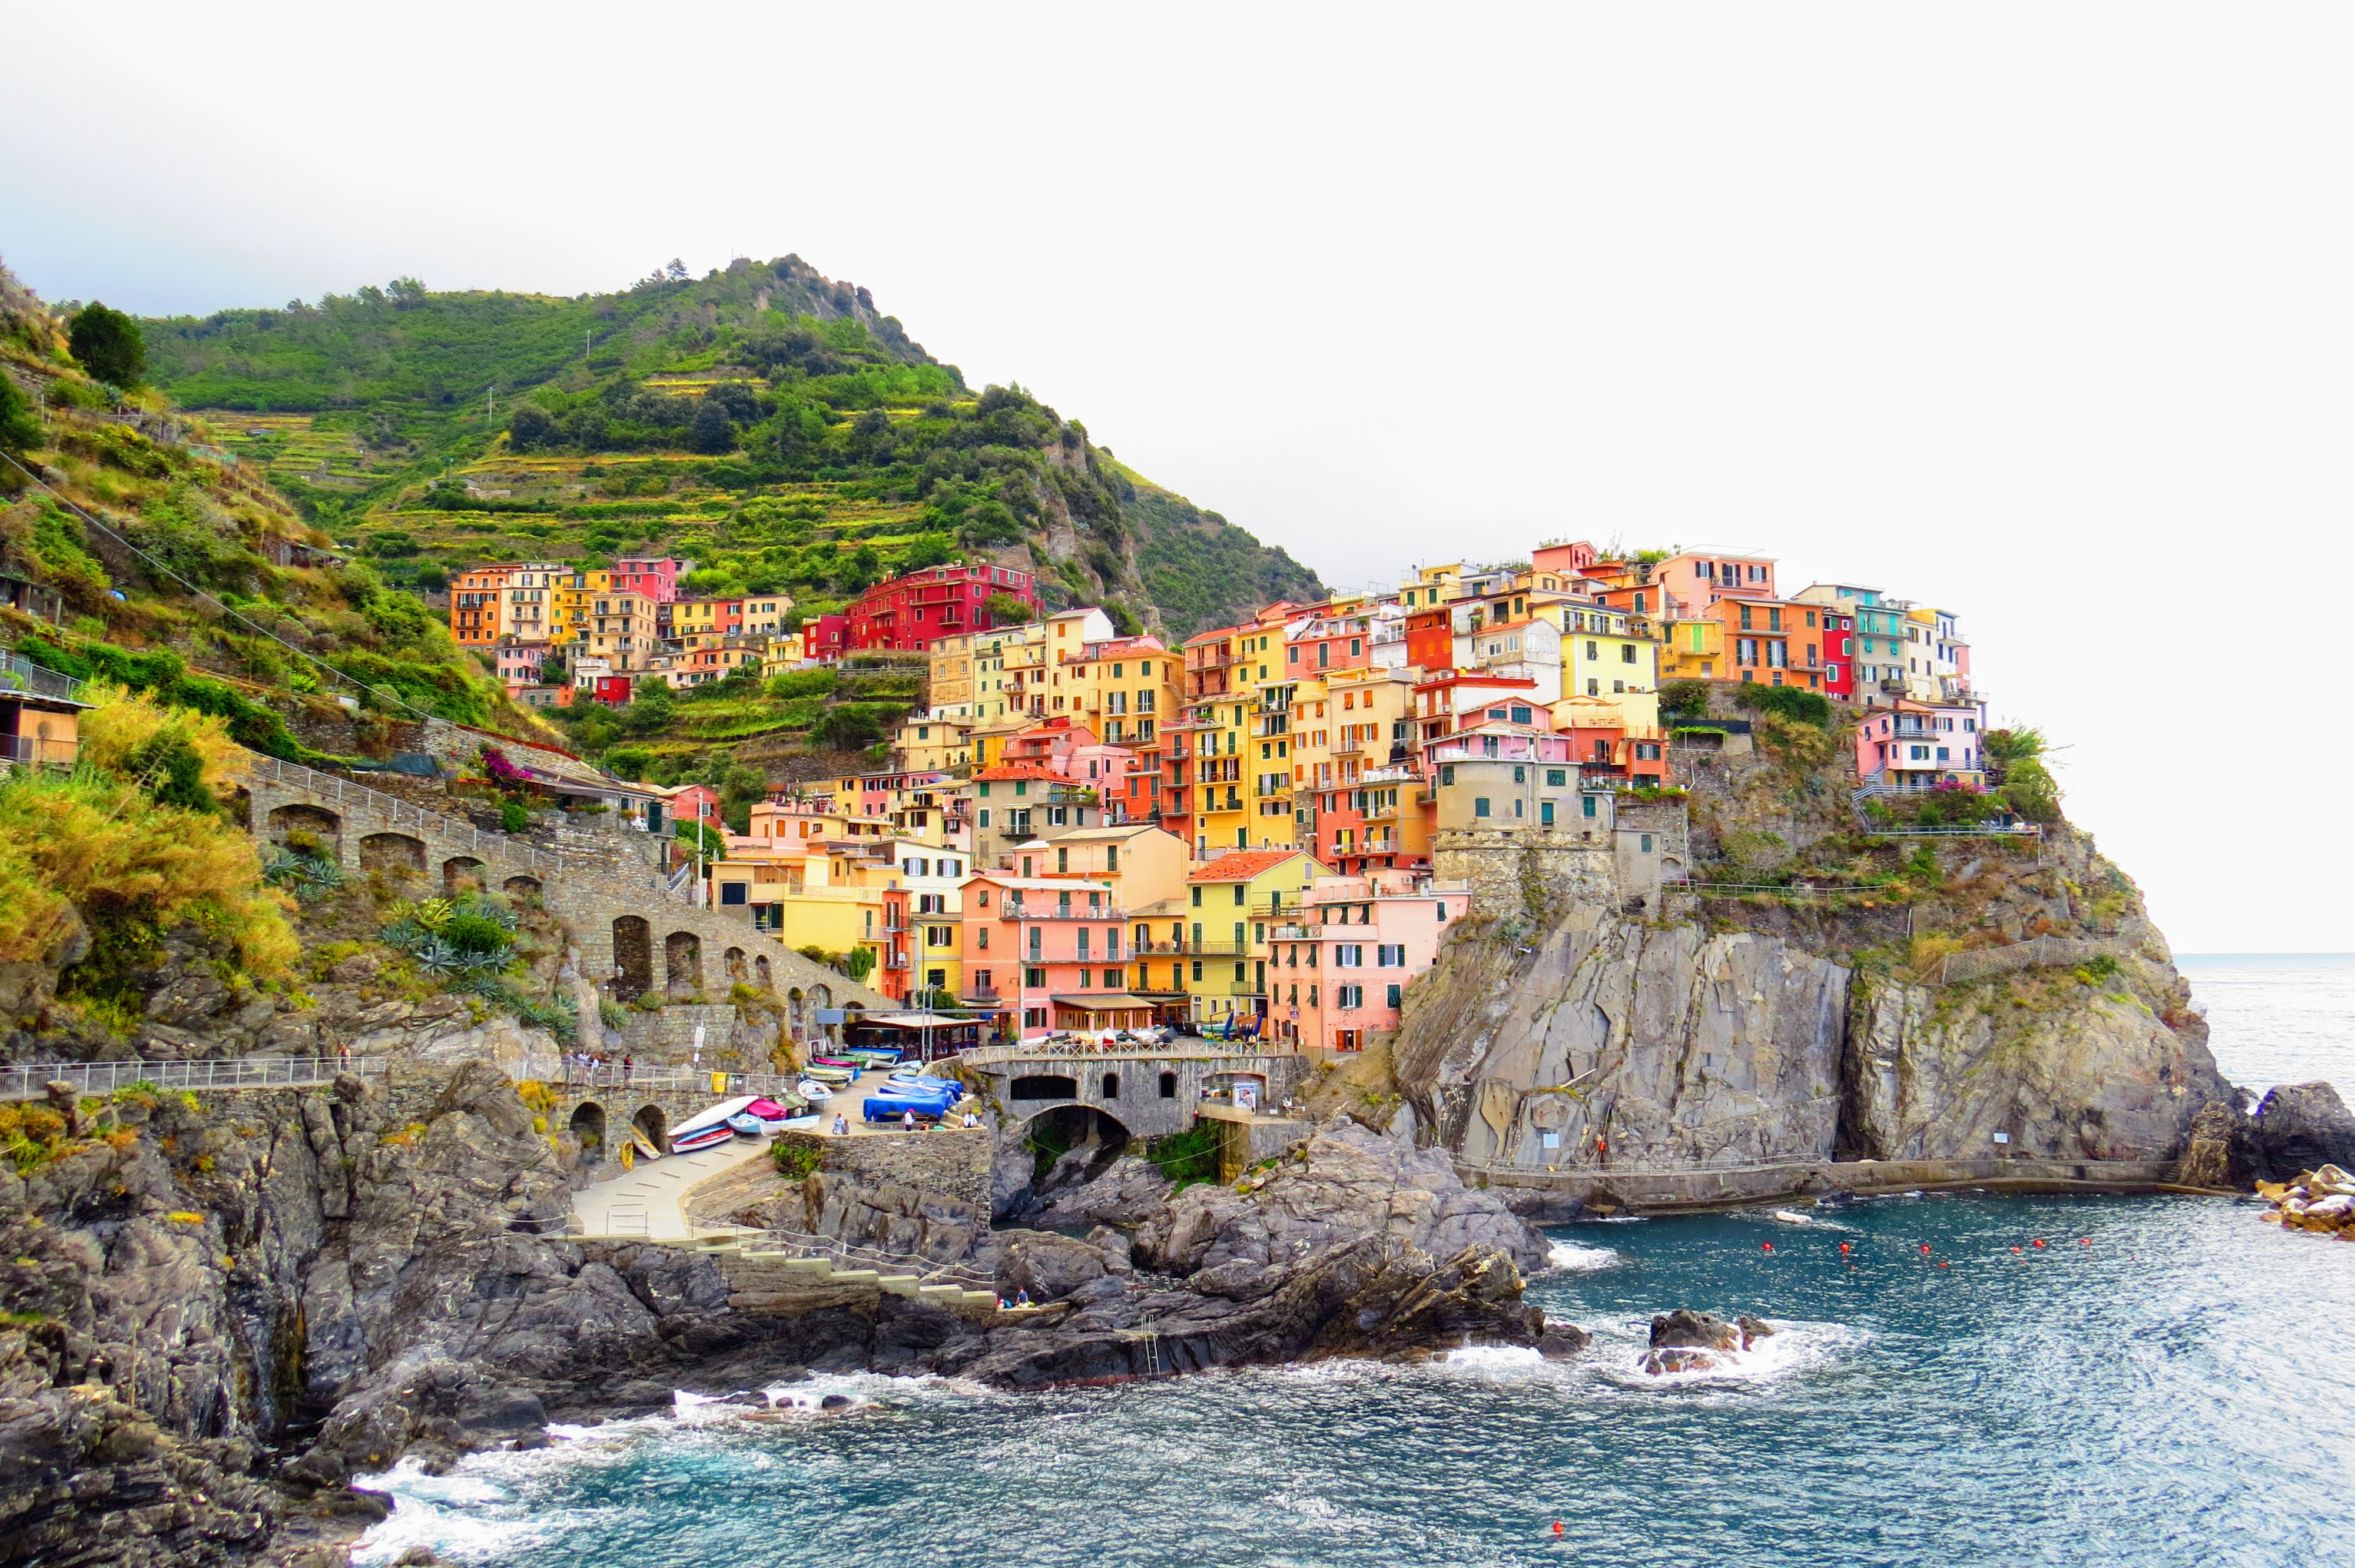 Cinque Terre. The colorful houses on the cliffs of Manarola, Italy. Backpacking Europe Q&A www.knowntoventure.com